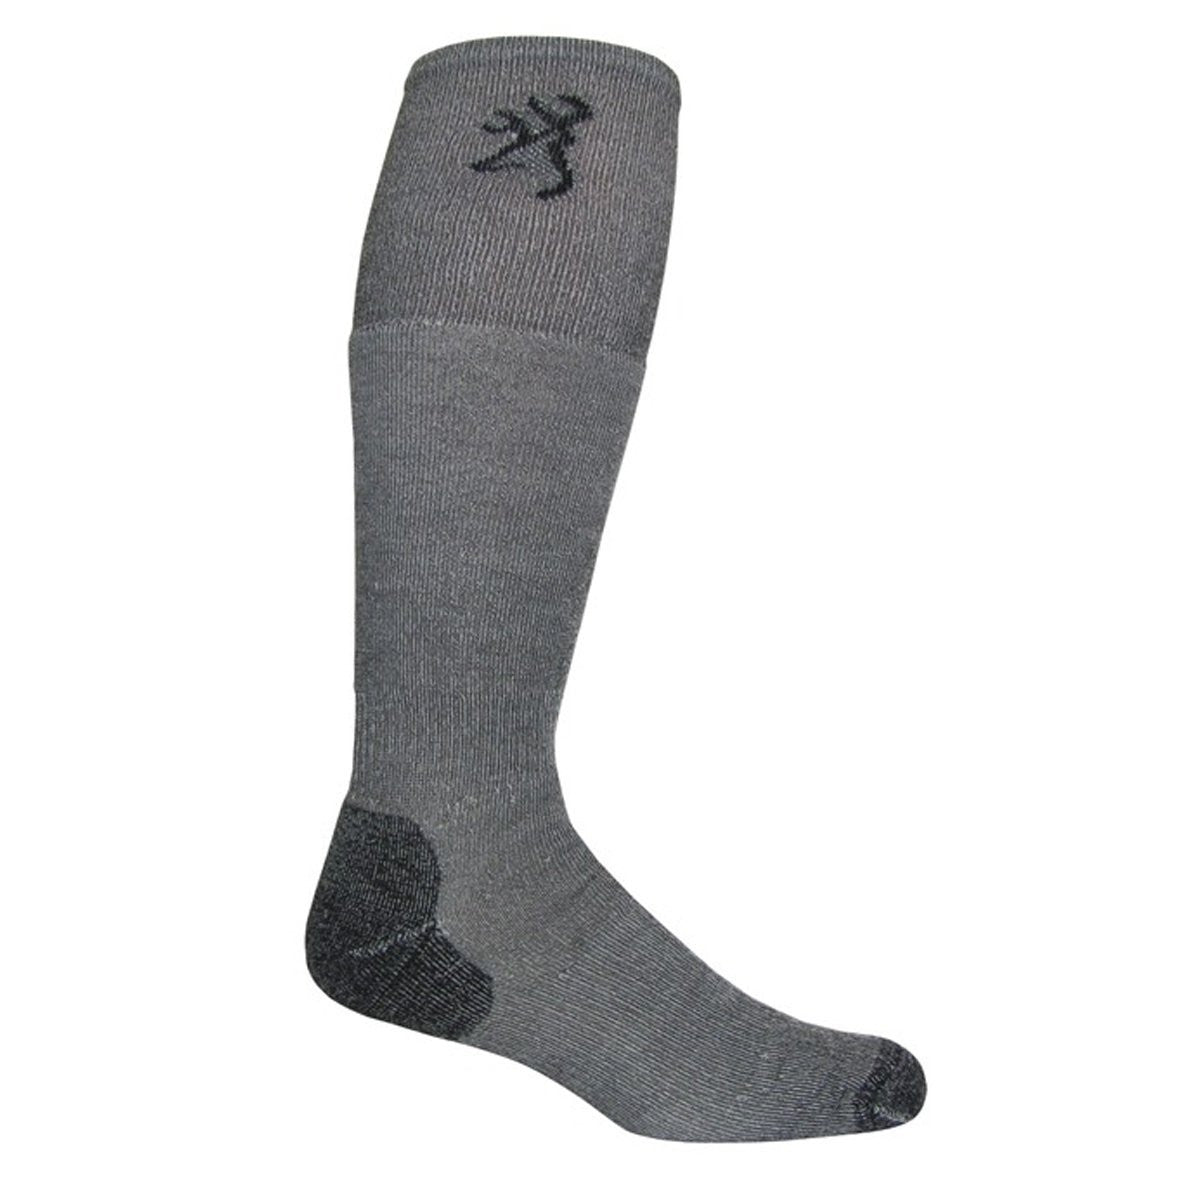 Browning Socks Tall Boot 8825, Black - Back40Trading2